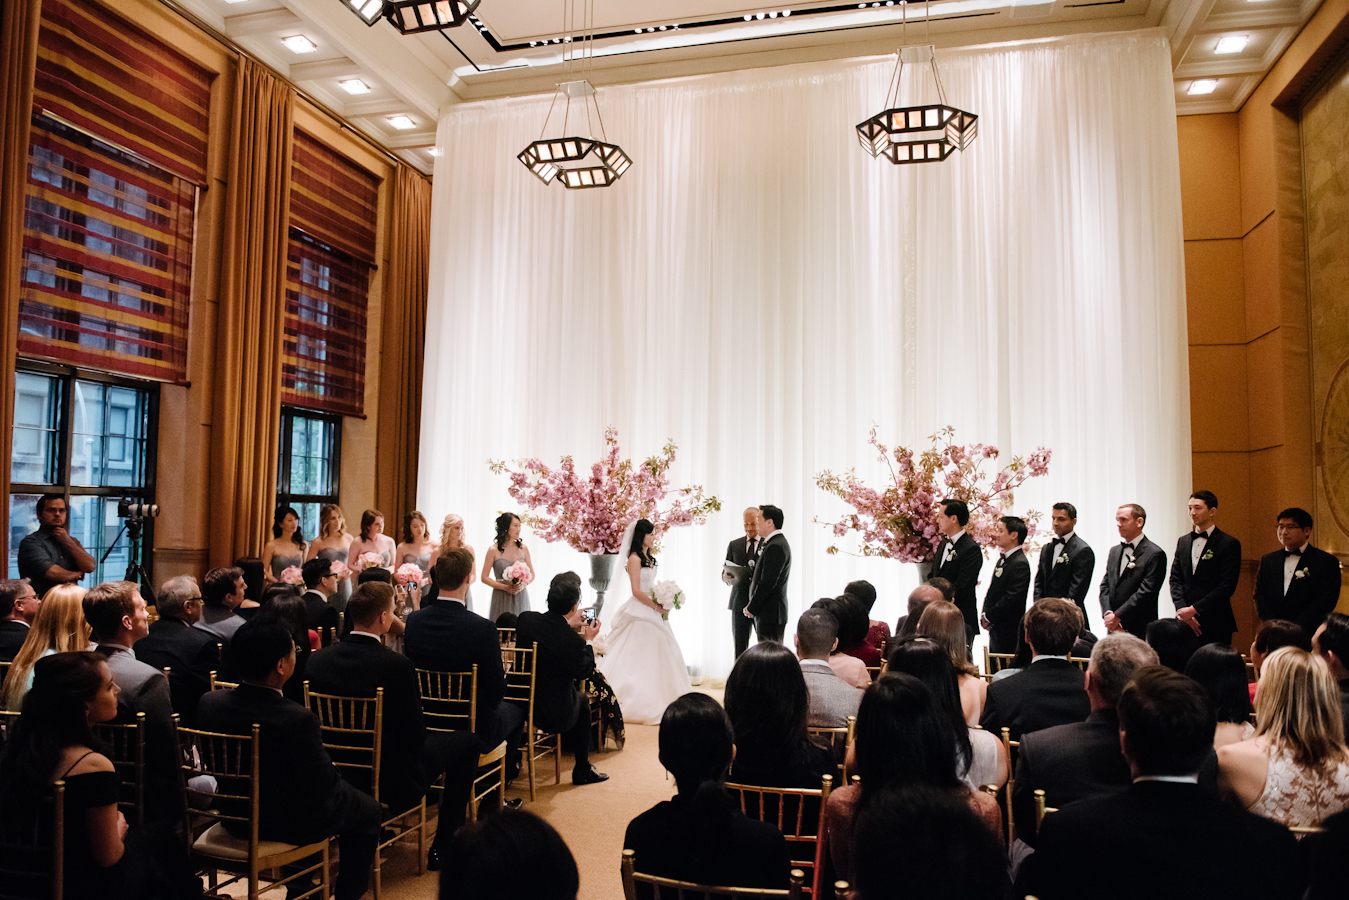 four seasons hotel wedding ang weddings and events brian hatton photography-26.jpg